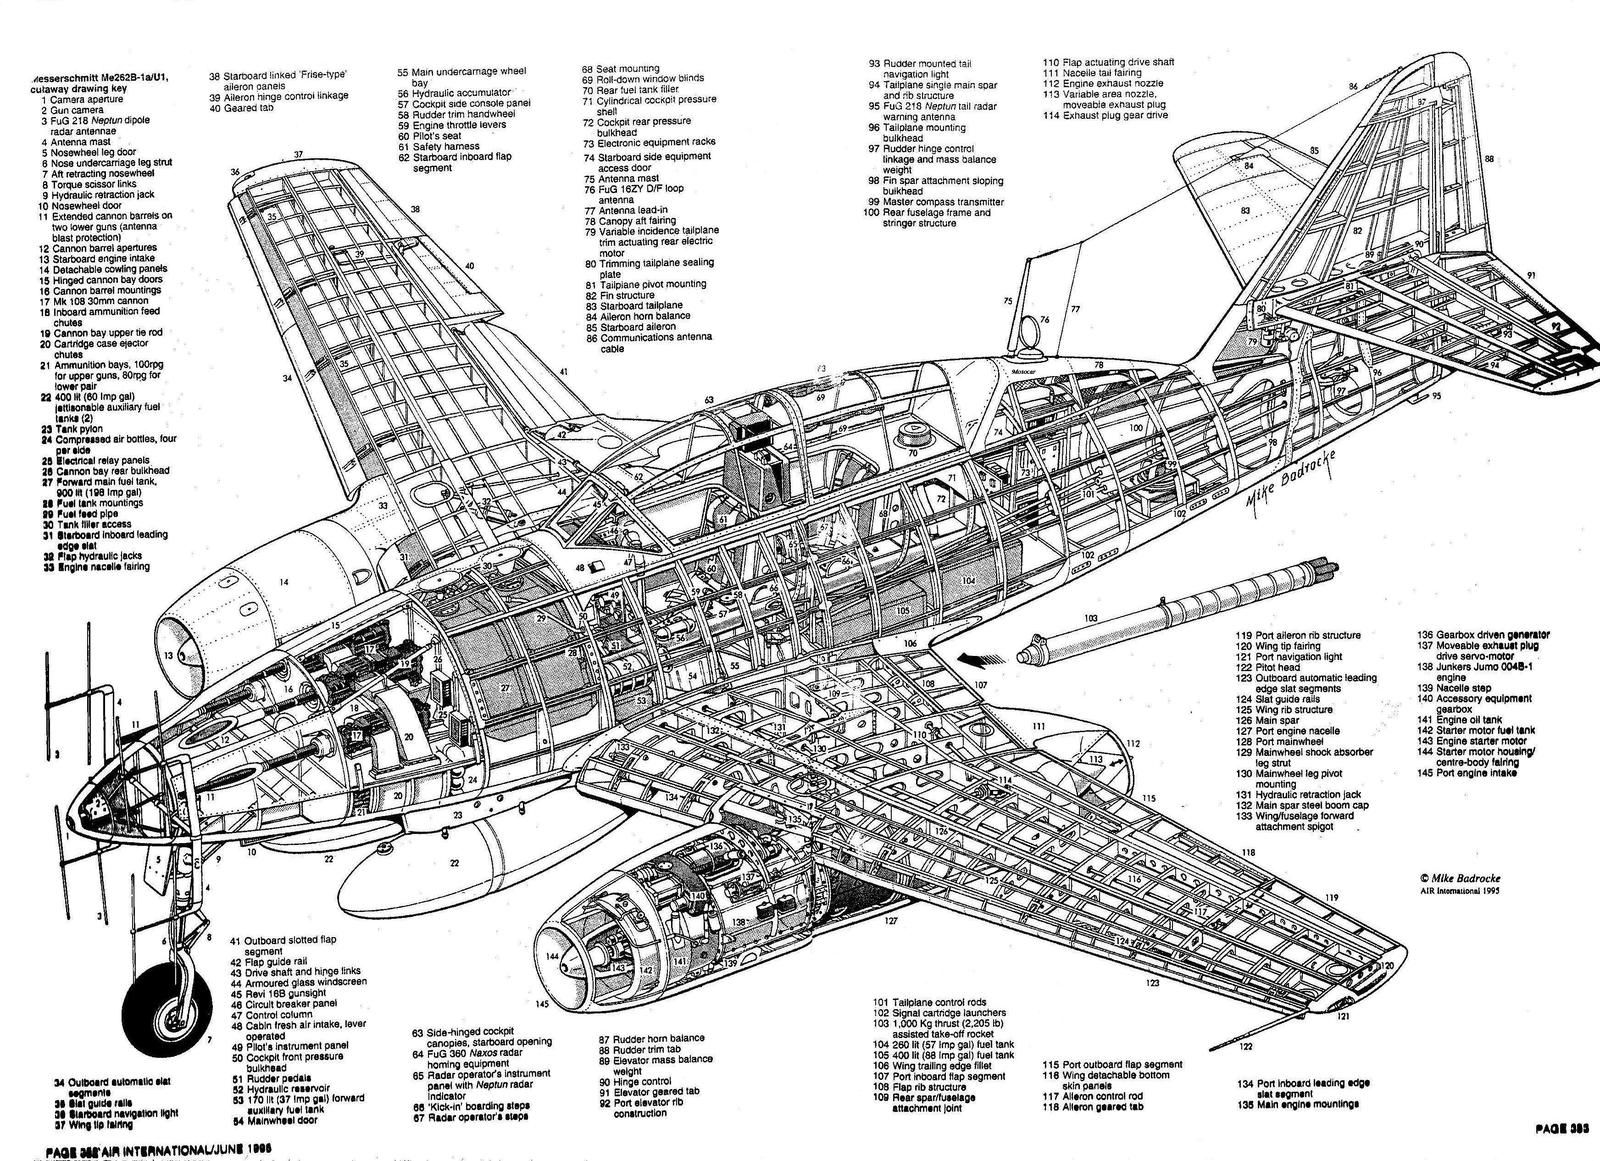 Pin by ming dong on Graphics | Ww2 planes, Aircraft design